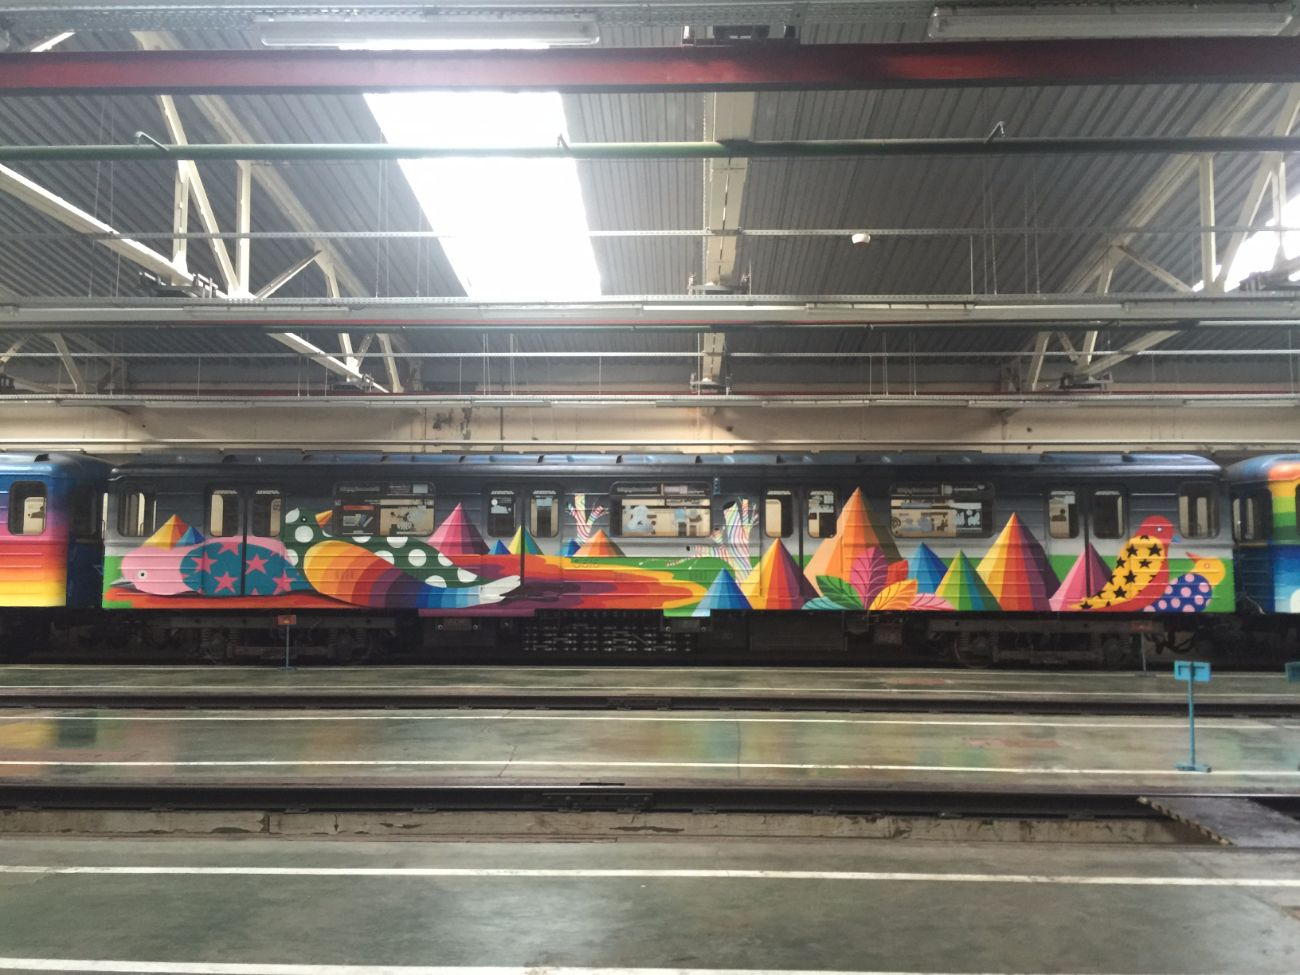 okuda-san-miguels-5-car-train-in-kiev-ukraine-thevandallist-7